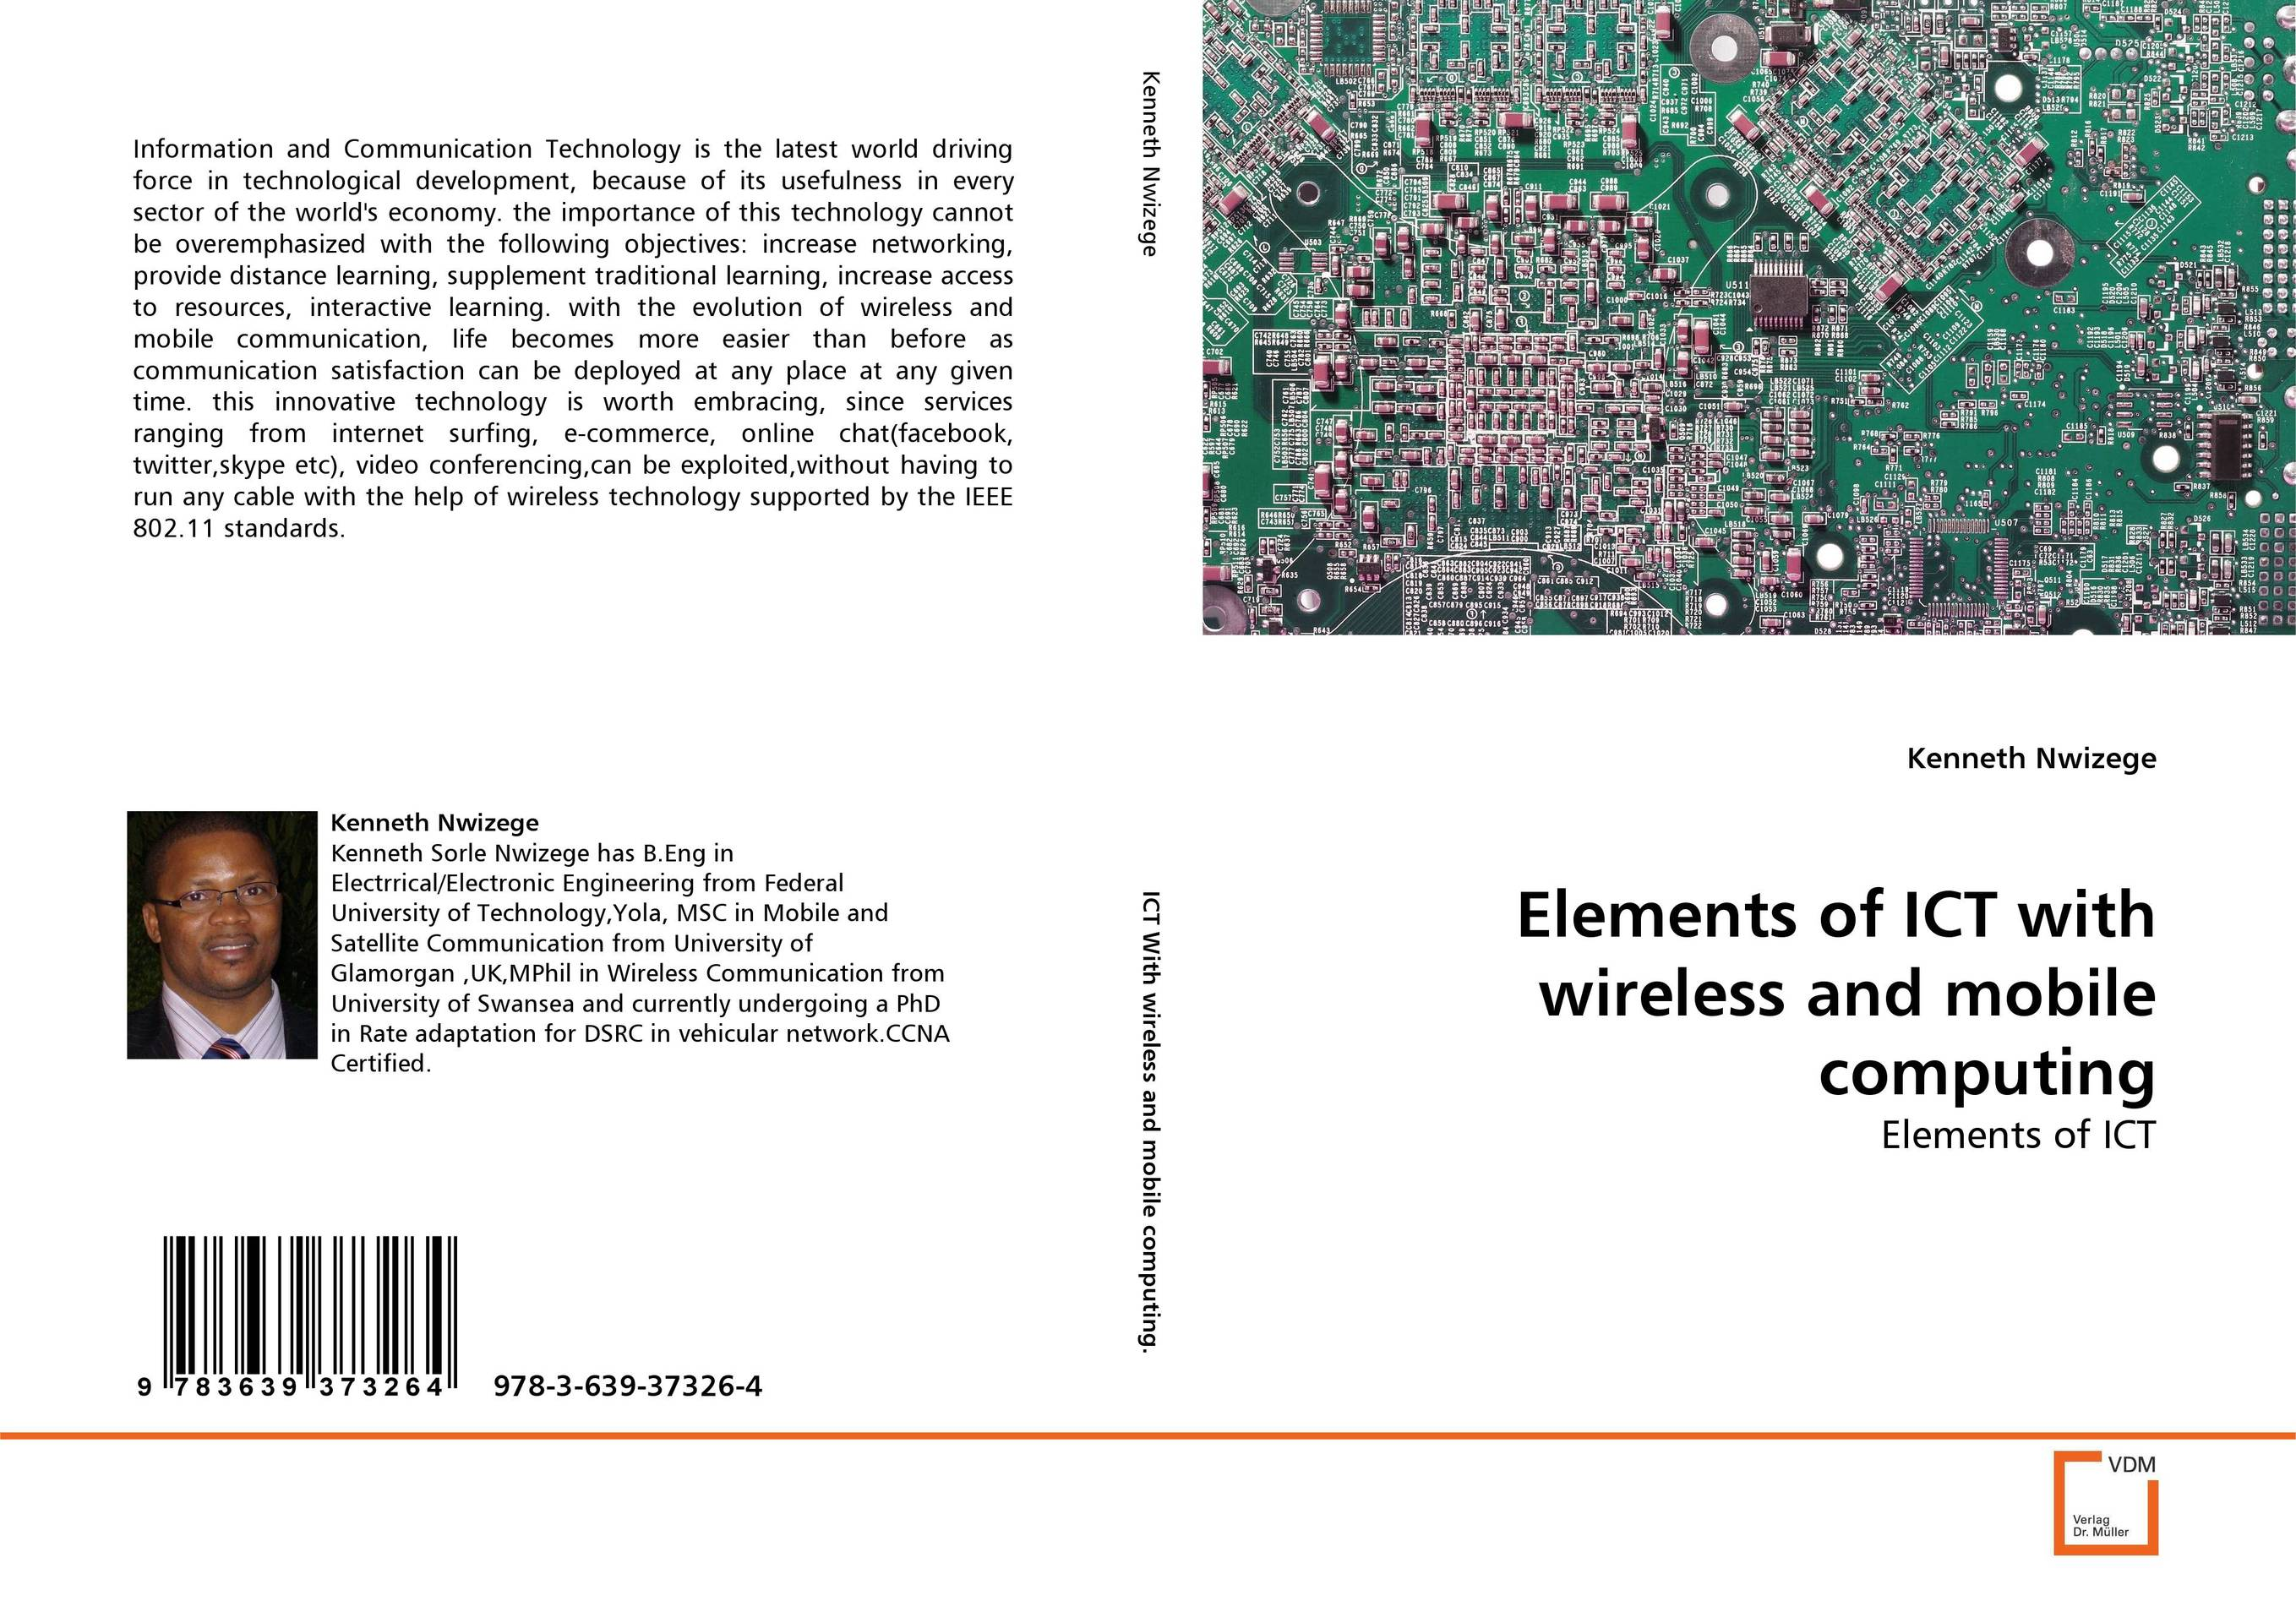 ELEMENTS OF ICT WITH WIRELESS AND MOBILE COMPUTING